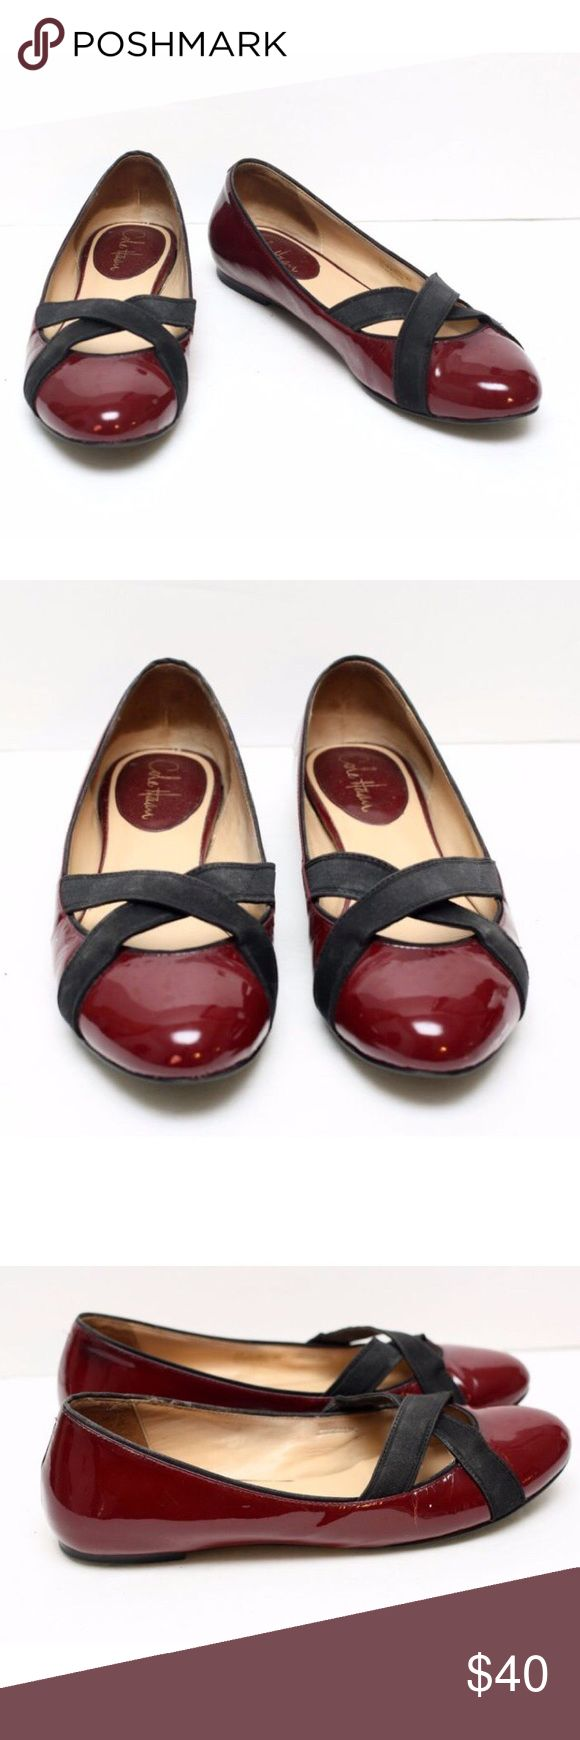 Cole Haan Air Lyric Red Ballet Flats Cole Haan Air Lyric Red Ballet Flats. Size 9. Cole Haan Shoes Flats & Loafers